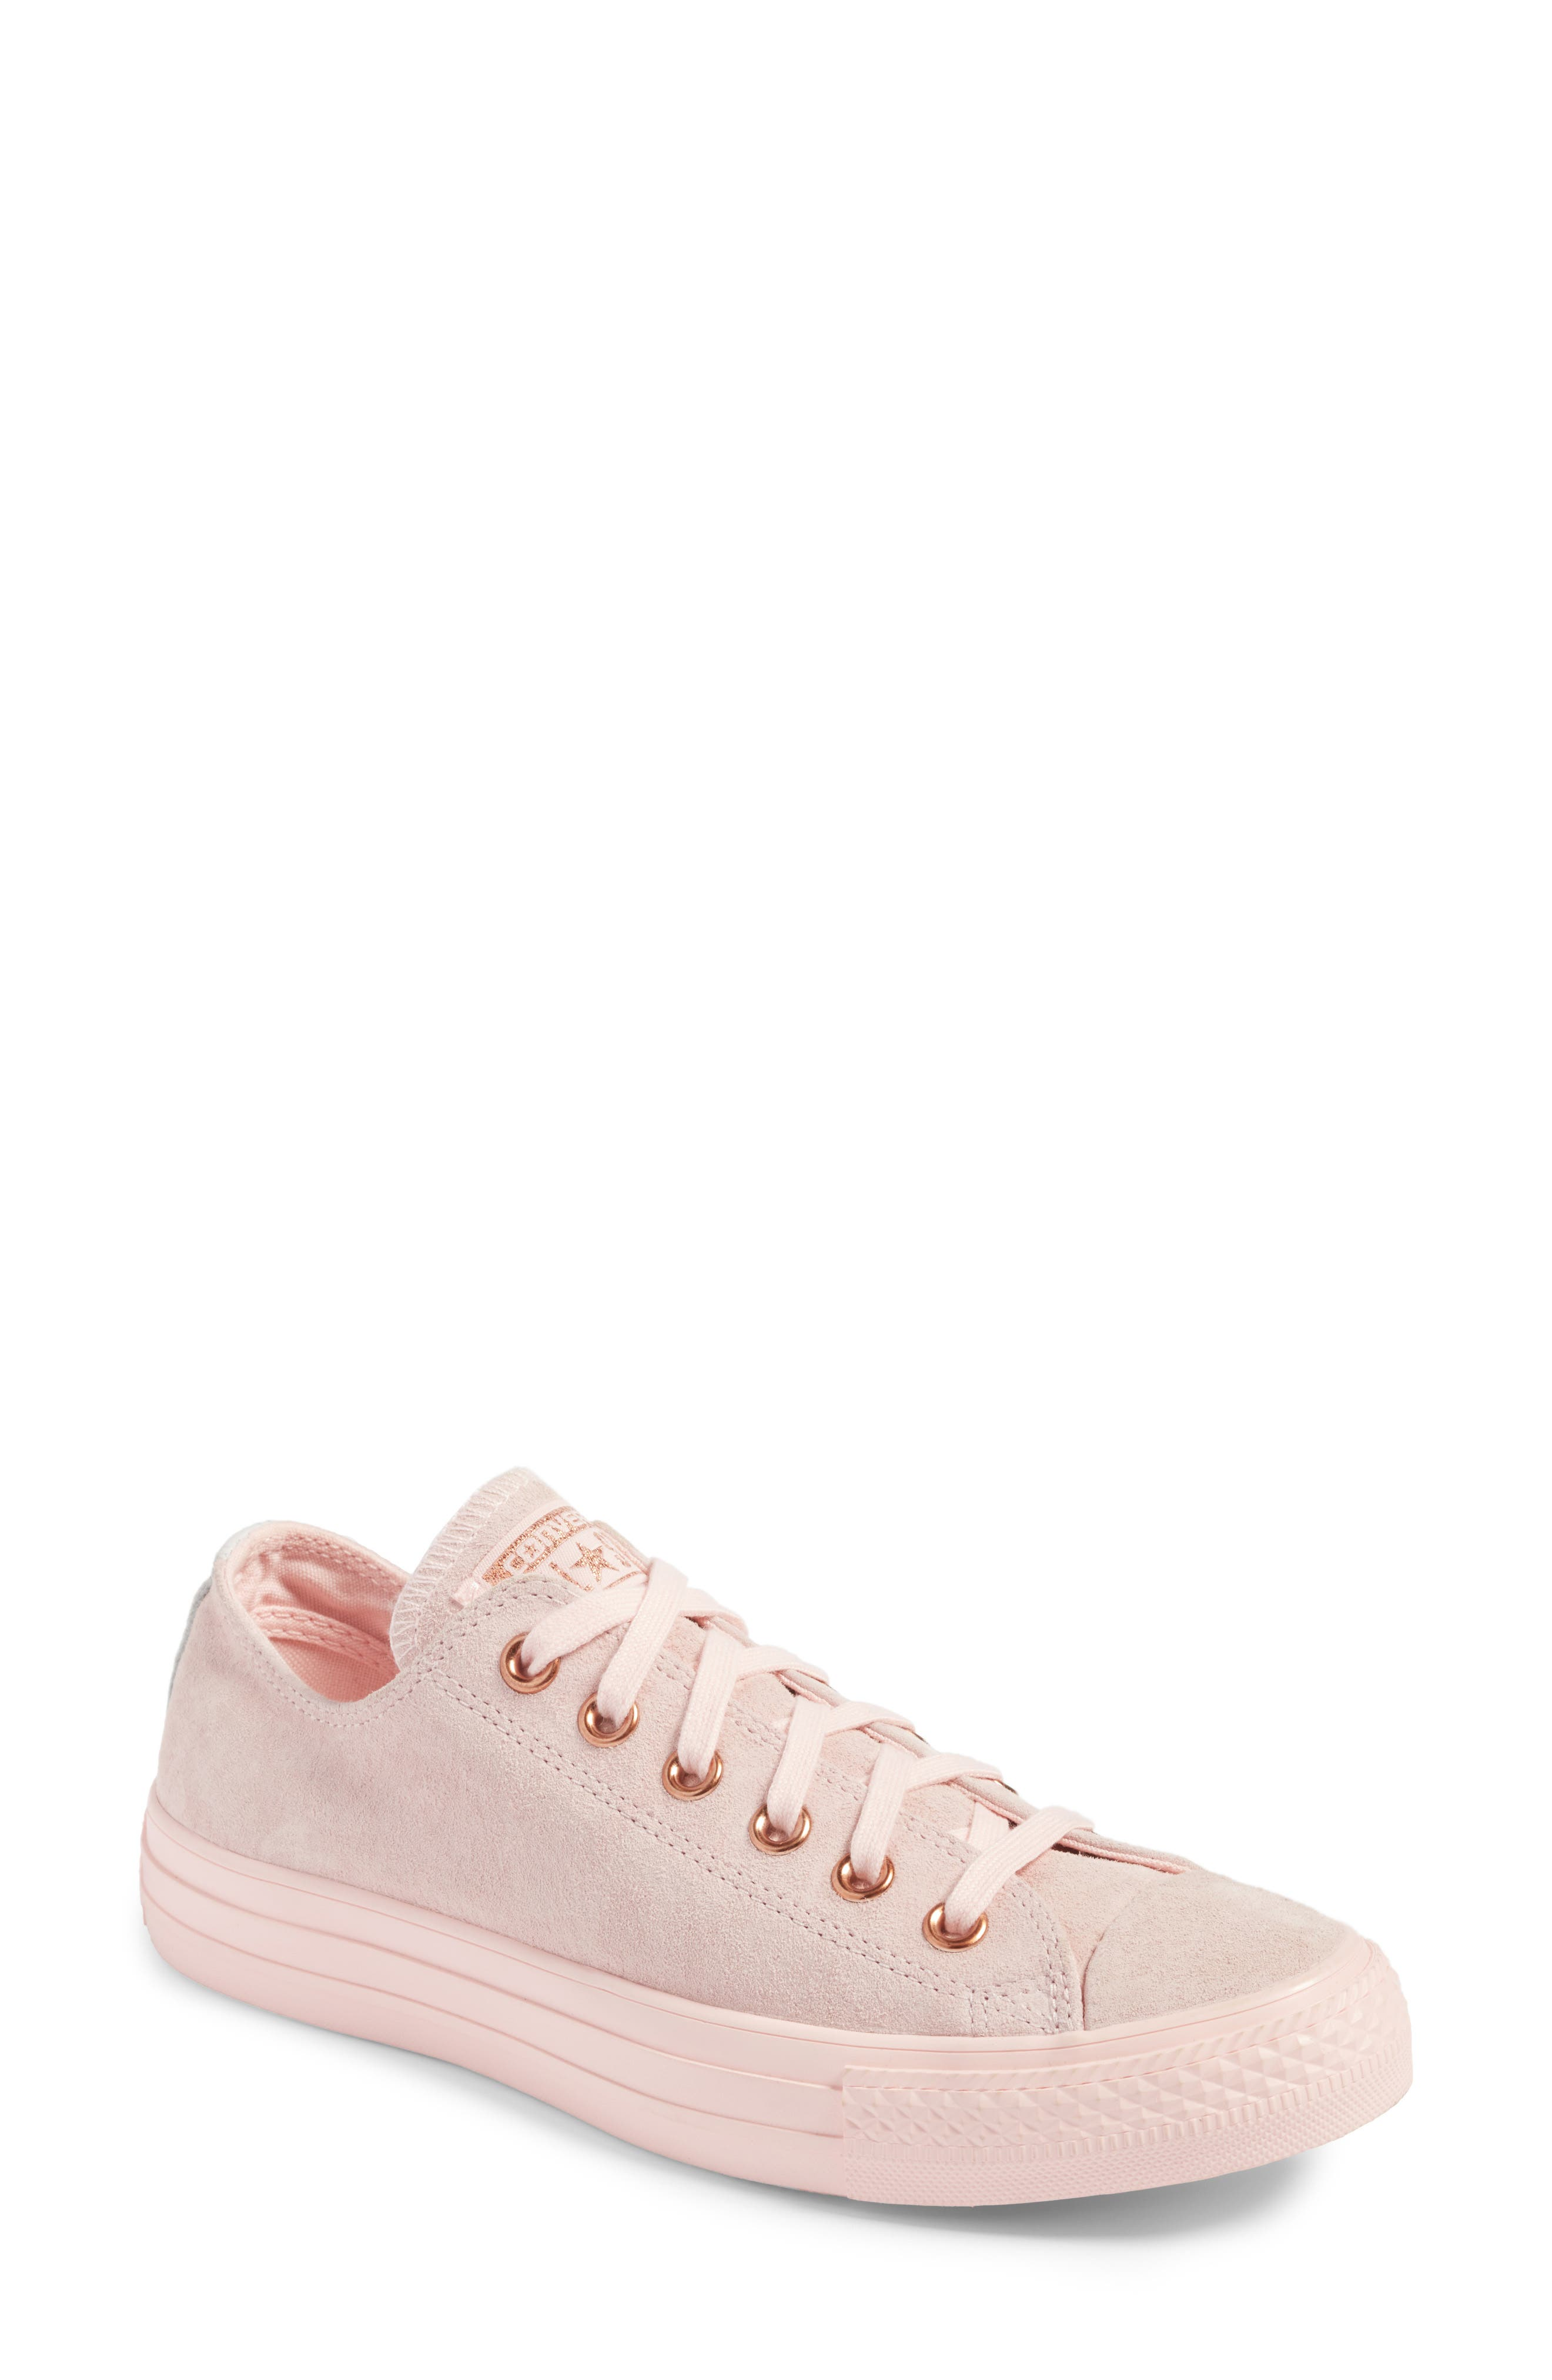 Alternate Image 1 Selected - Converse Blossom Sneaker (Women)